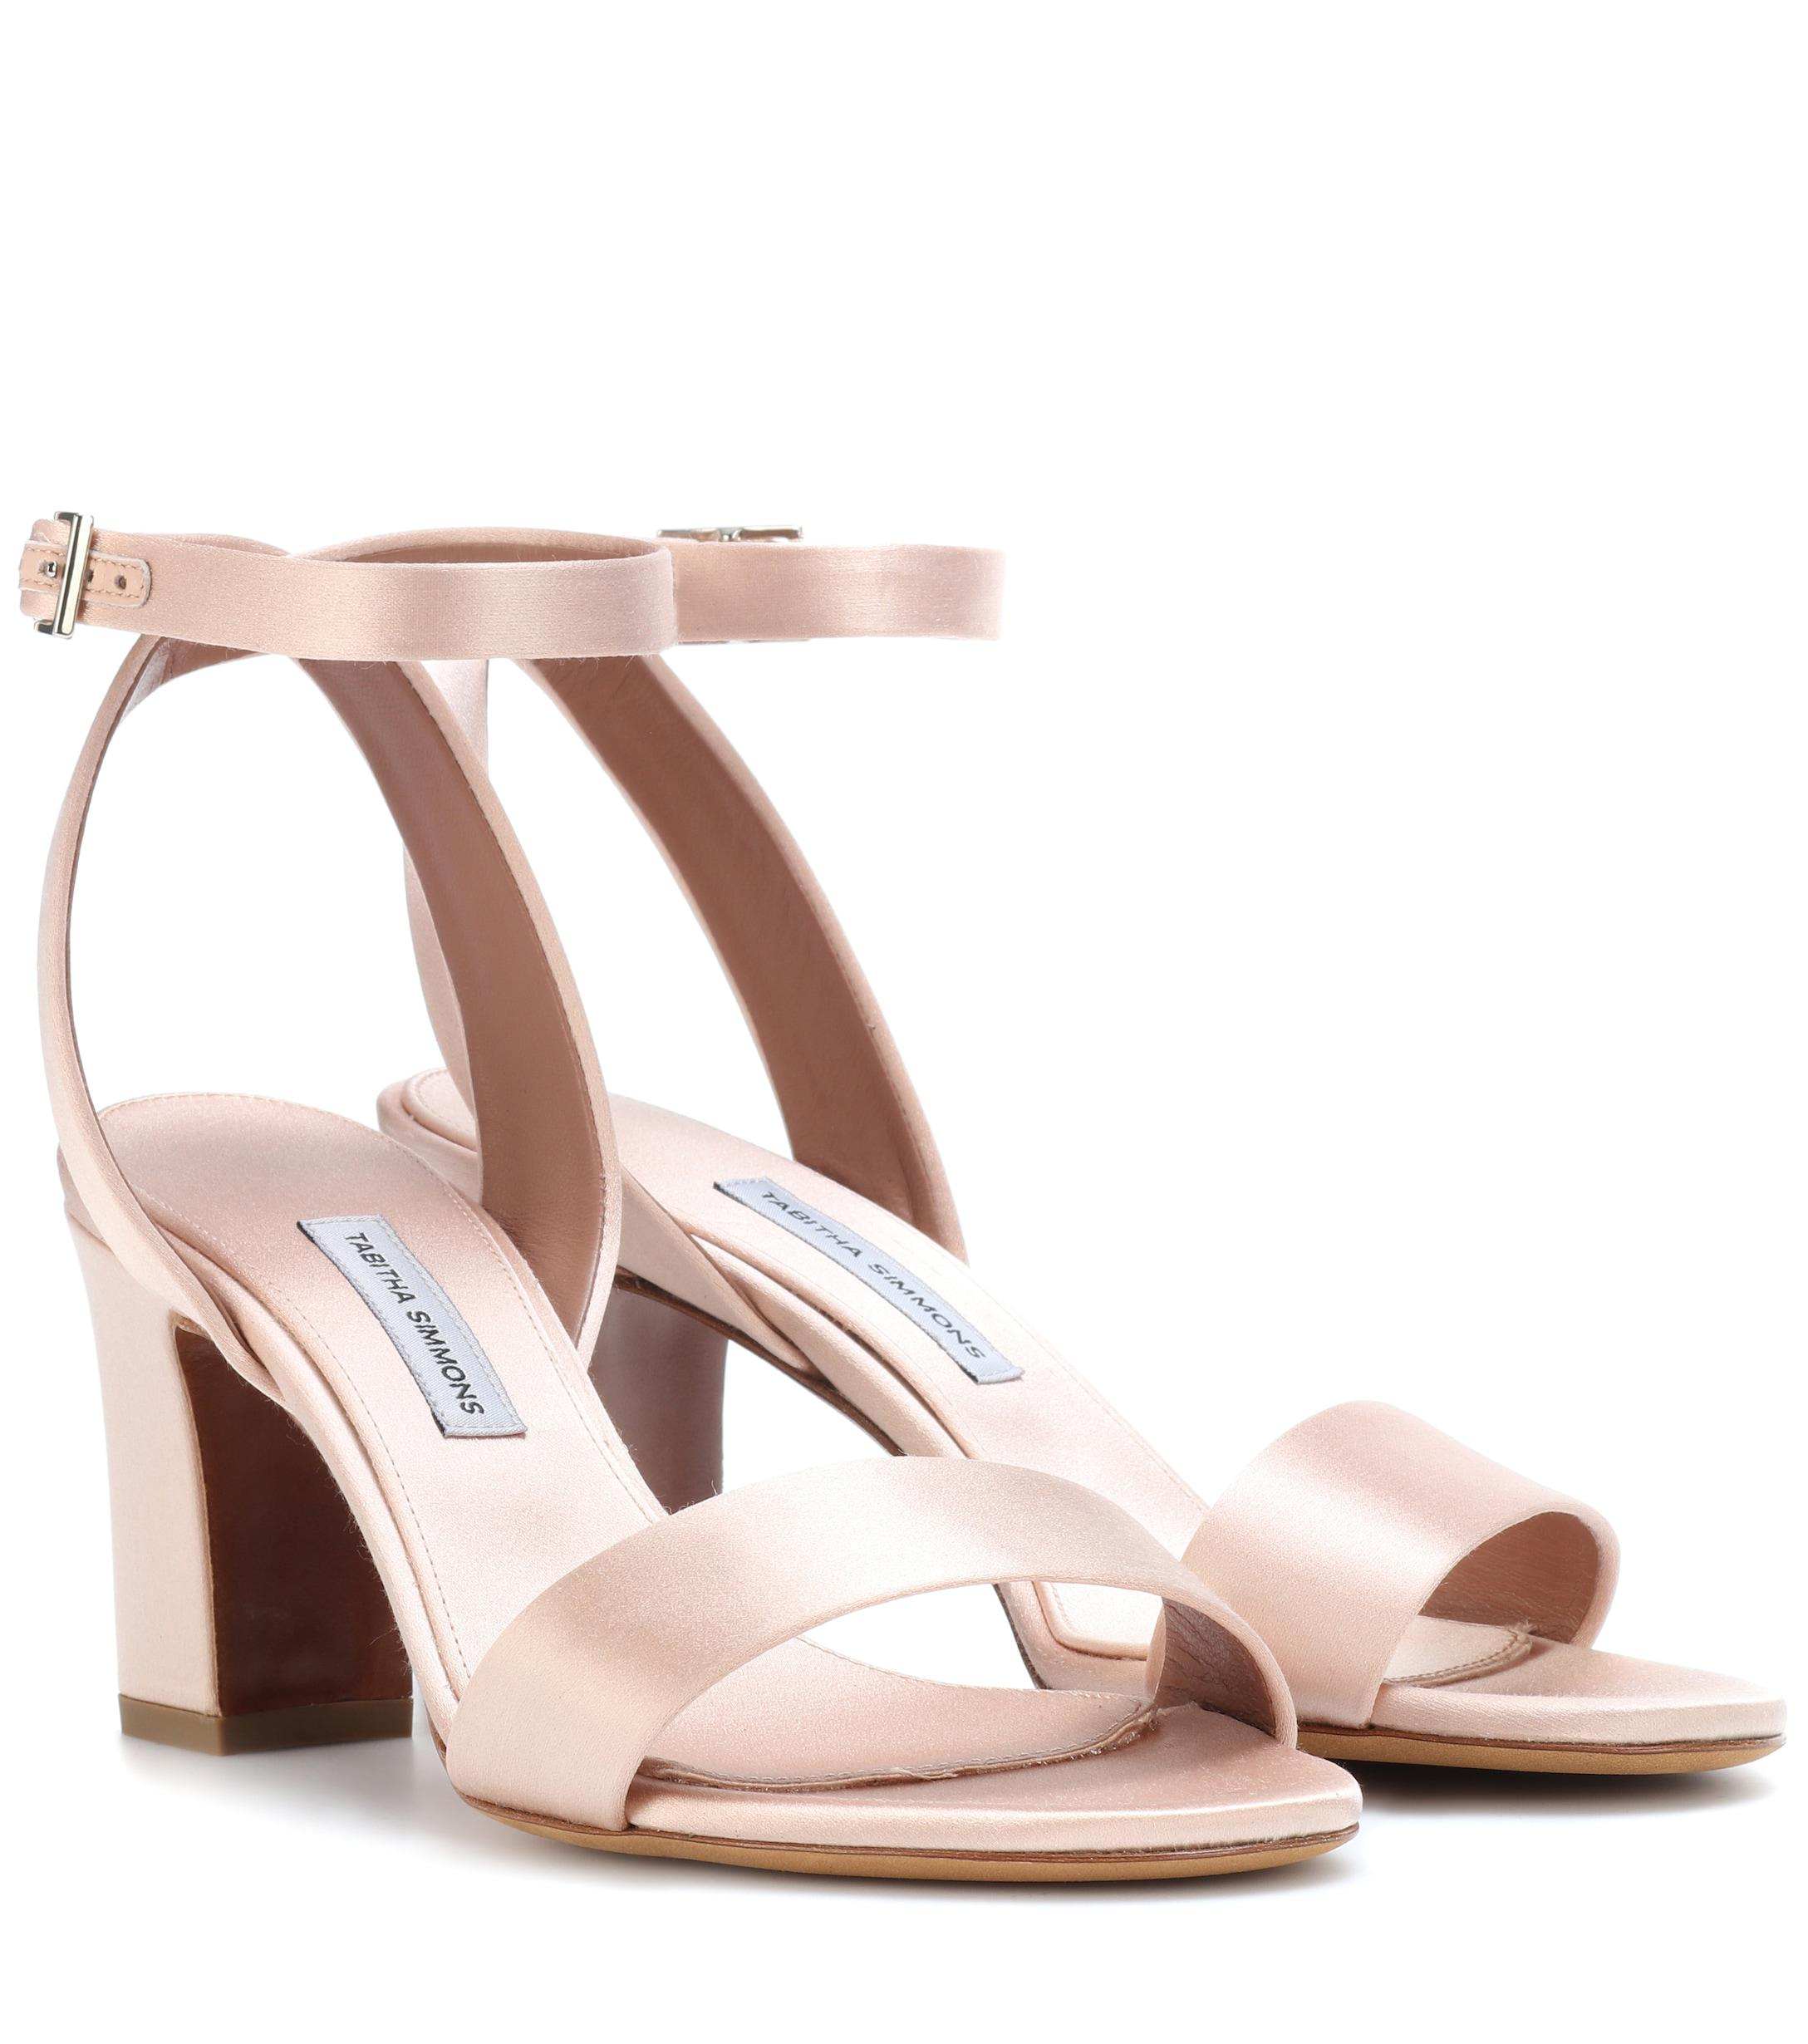 0a108217193 Tabitha Simmons - Pink Leticia Satin Sandals - Lyst. View fullscreen